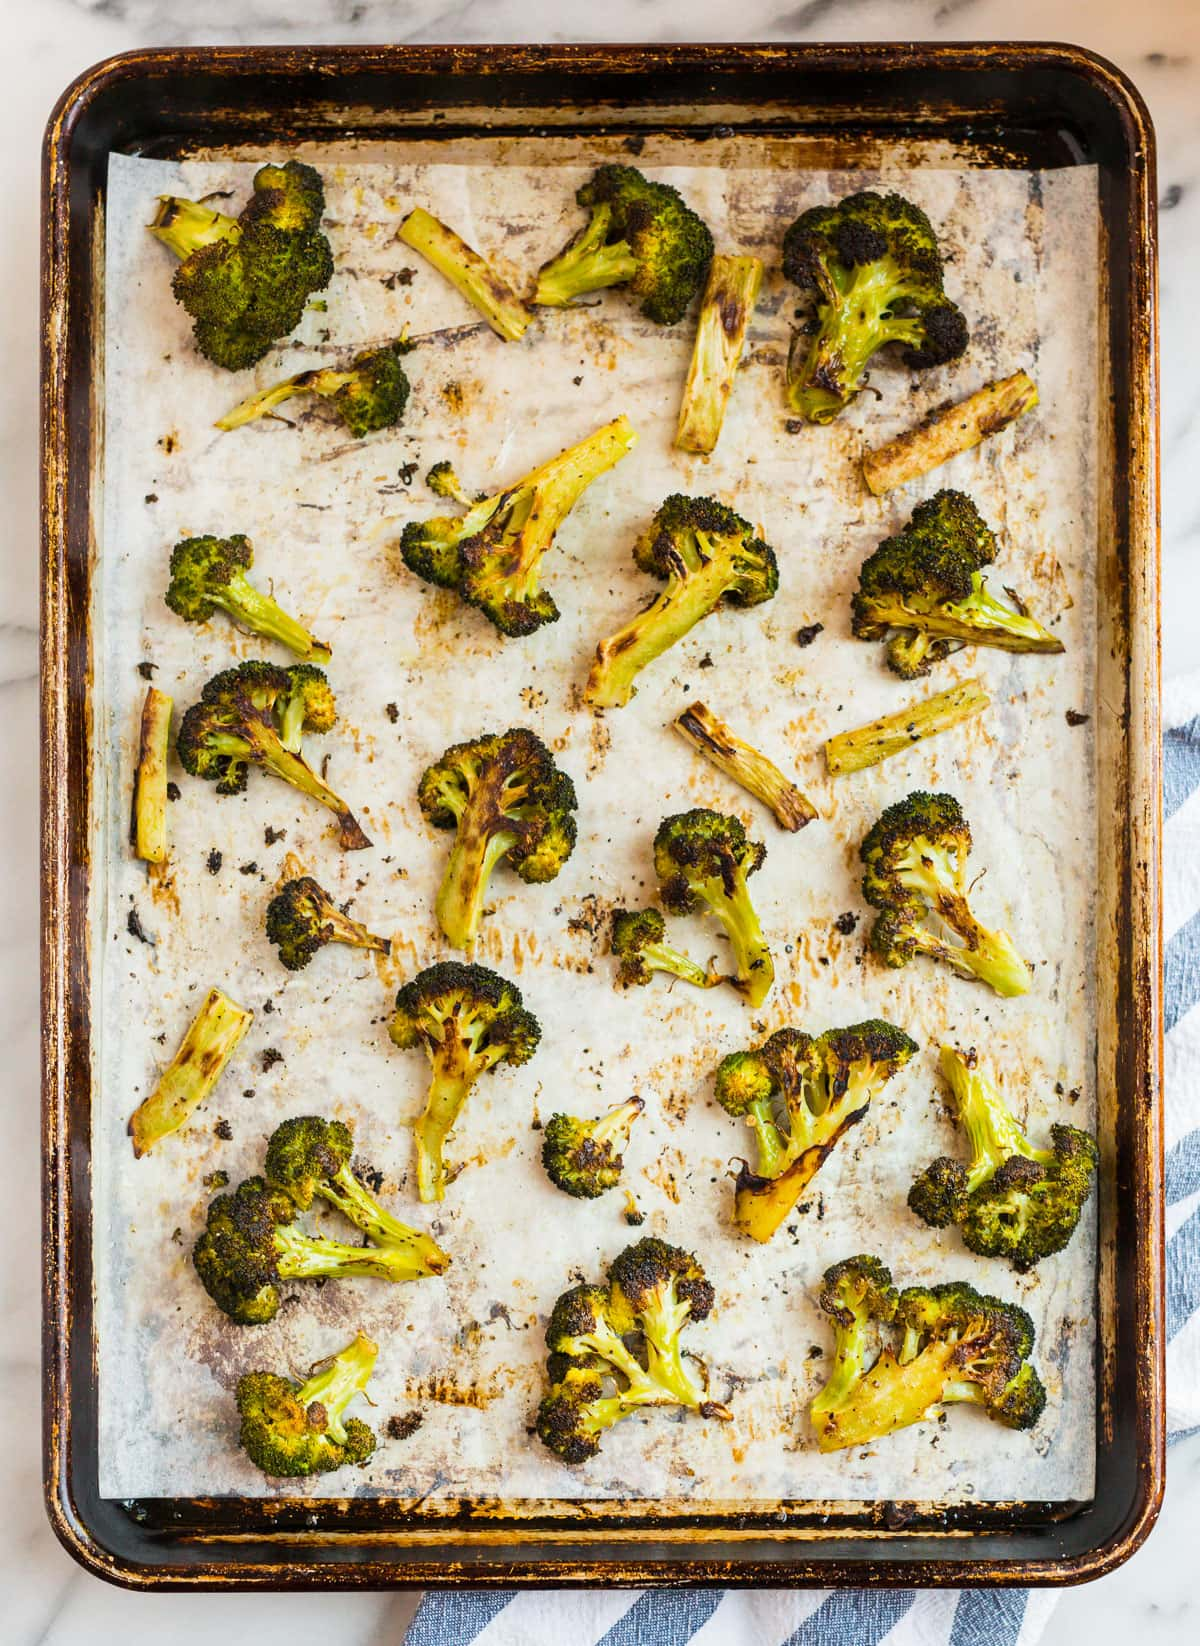 Roasted vegetables on a sheet pan